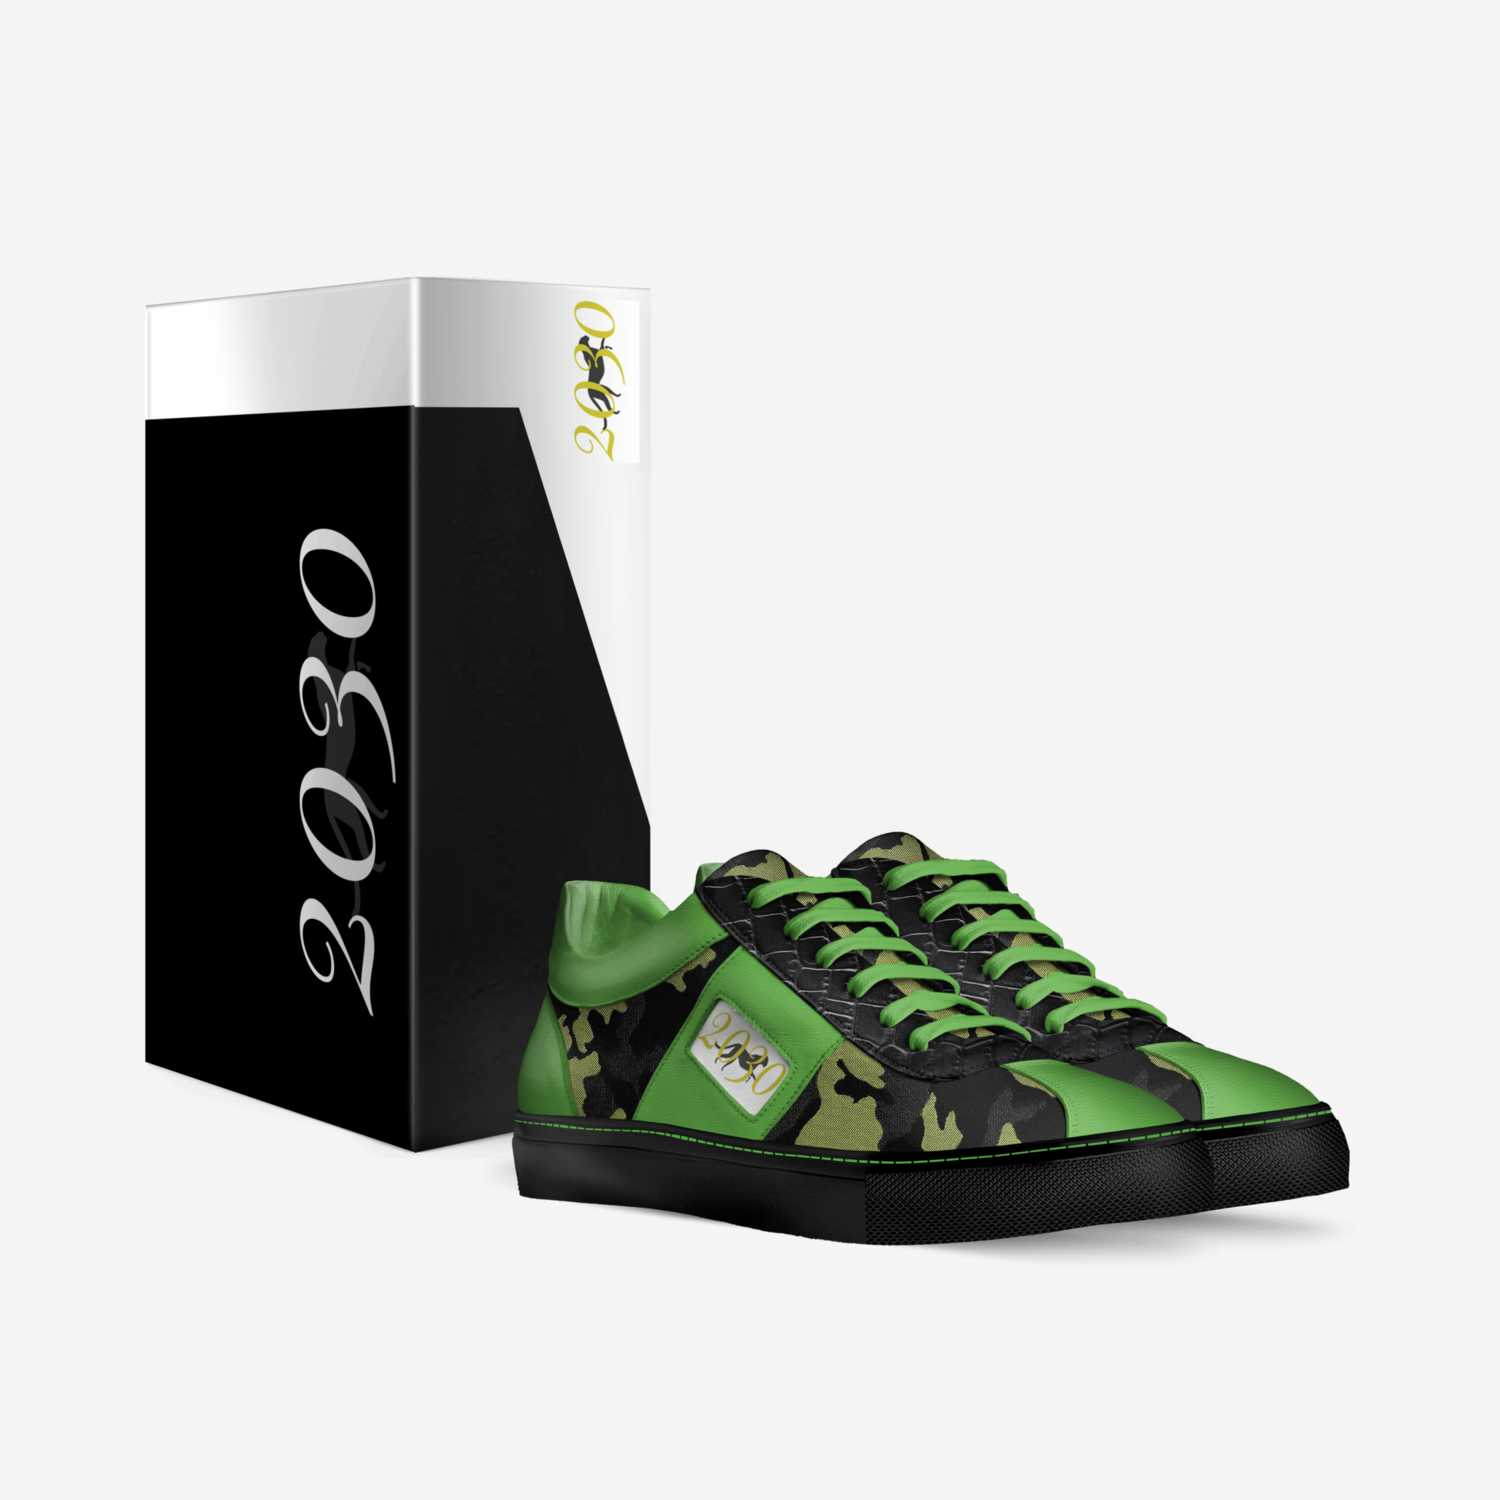 2030 custom made in Italy shoes by JuVon | Box view